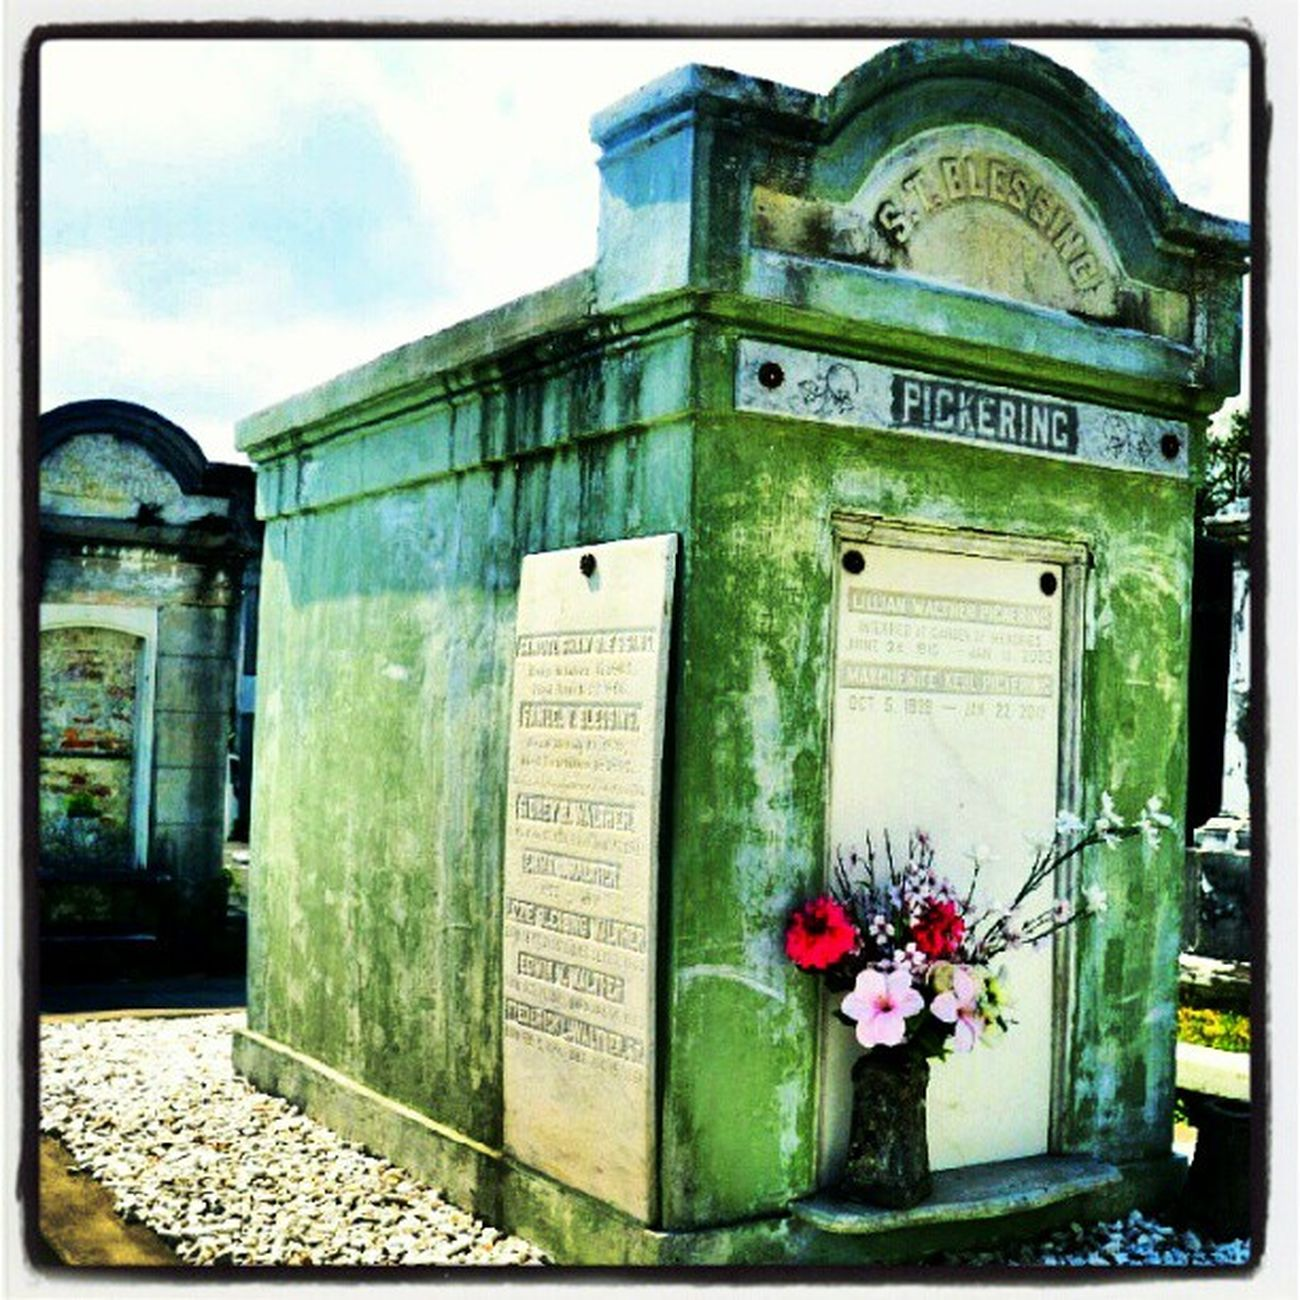 Pickering. #green #mausoleum #marble #neworleans #nola #grief #grave #tomb #tombstone #cemetery #saveourcemeteries #lafayettestreetcemetery Tomb Neworleans Saveourcemeteries Lafayettestreetcemetery Green Cemetery Grief Mausoleum Tombstone Marble Grave NOLA